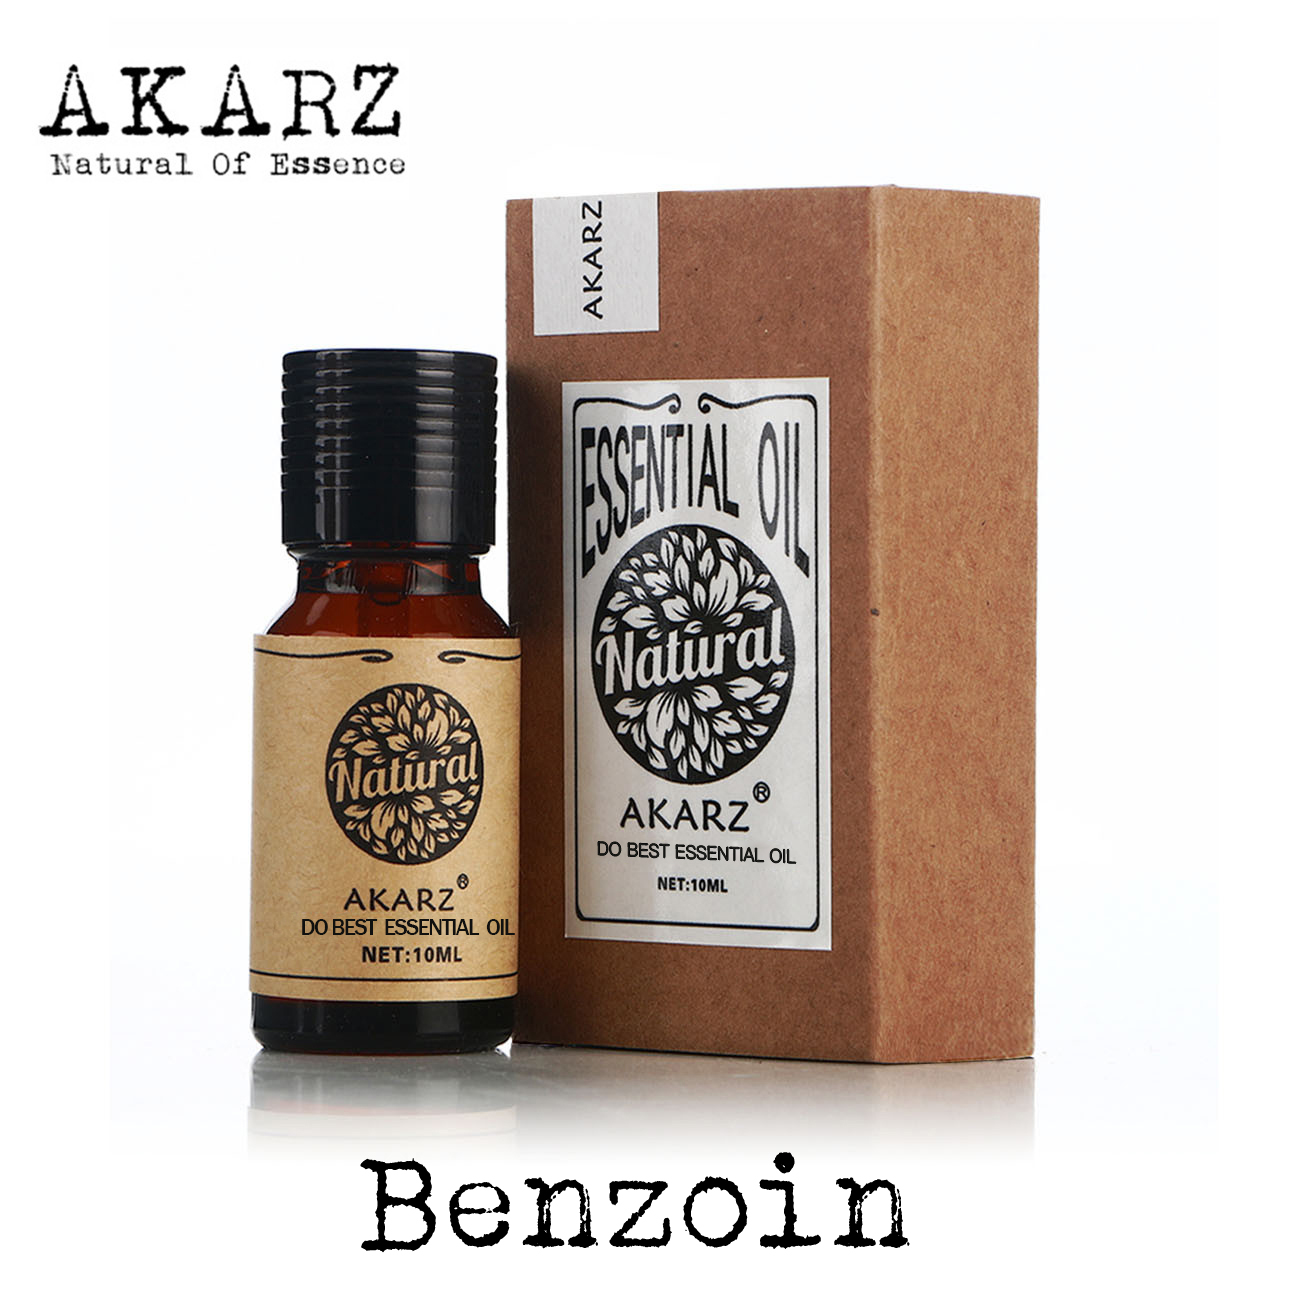 AKARZ Famous brand natural Benzoin Oil Restore skin elasticity blood circulation Soothing emotion Benzoin essential Oil akarz famous brand natural angelica oil dilation of blood vessels promoting hepatocyte regeneration angelica essential oil